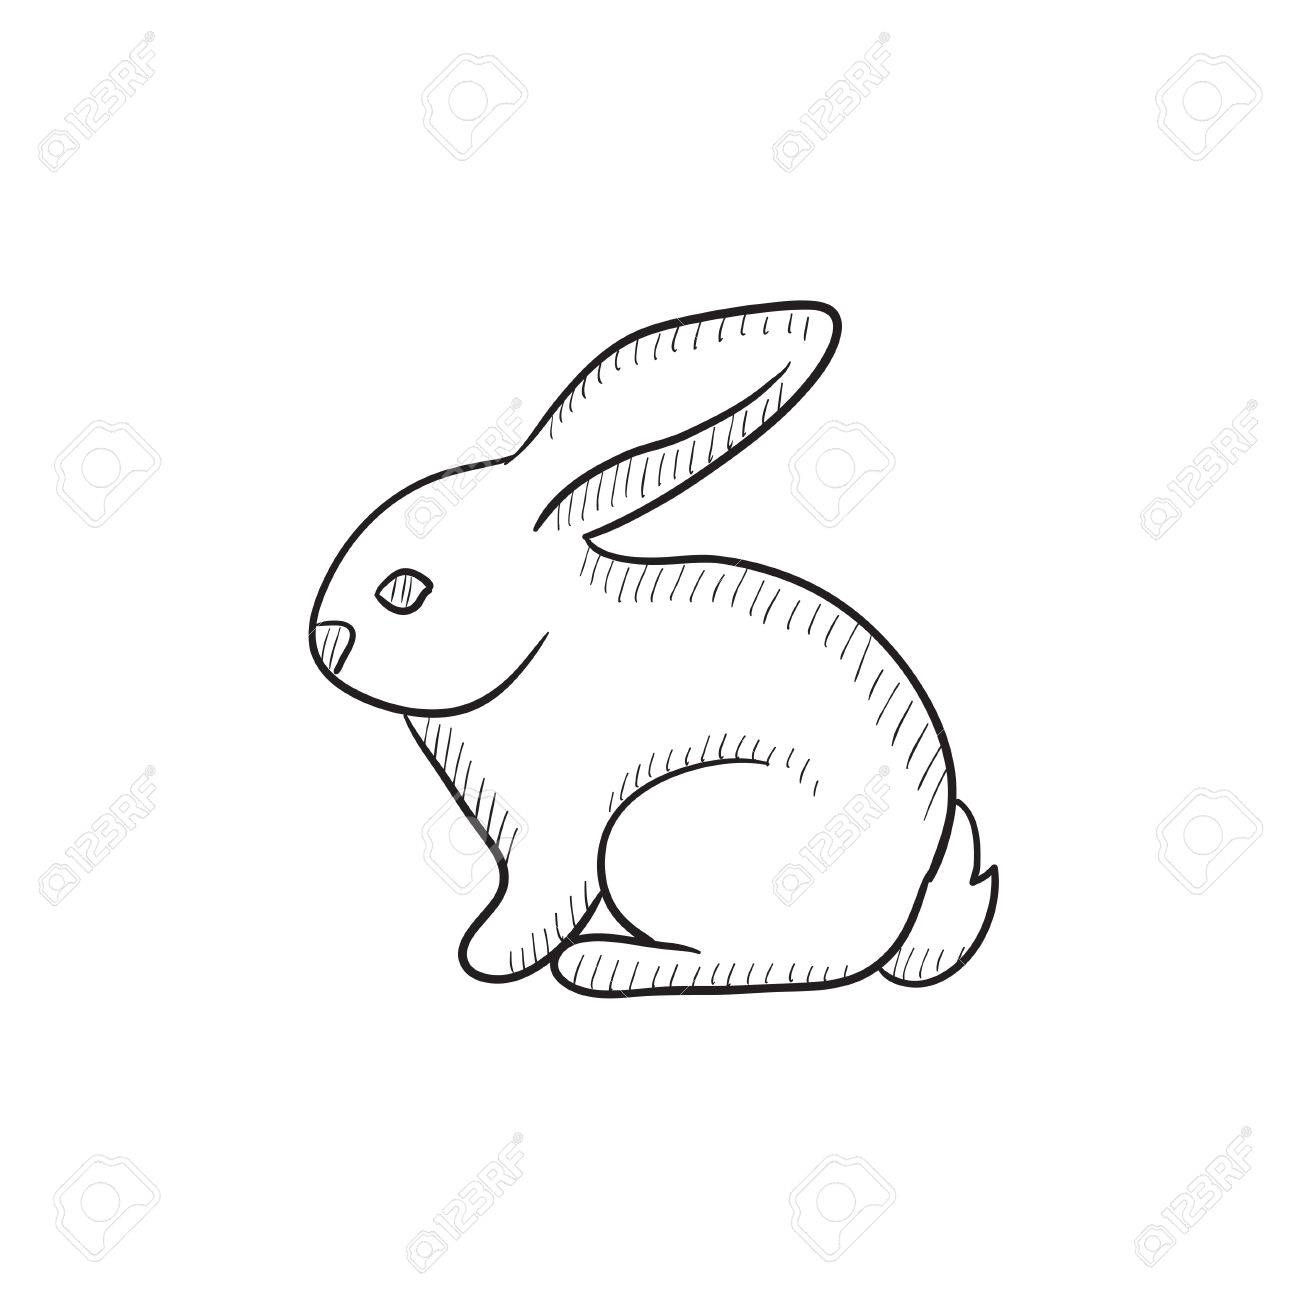 1300x1300 Rabbit Vector Sketch Icon Isolated On Background. Hand Drawn